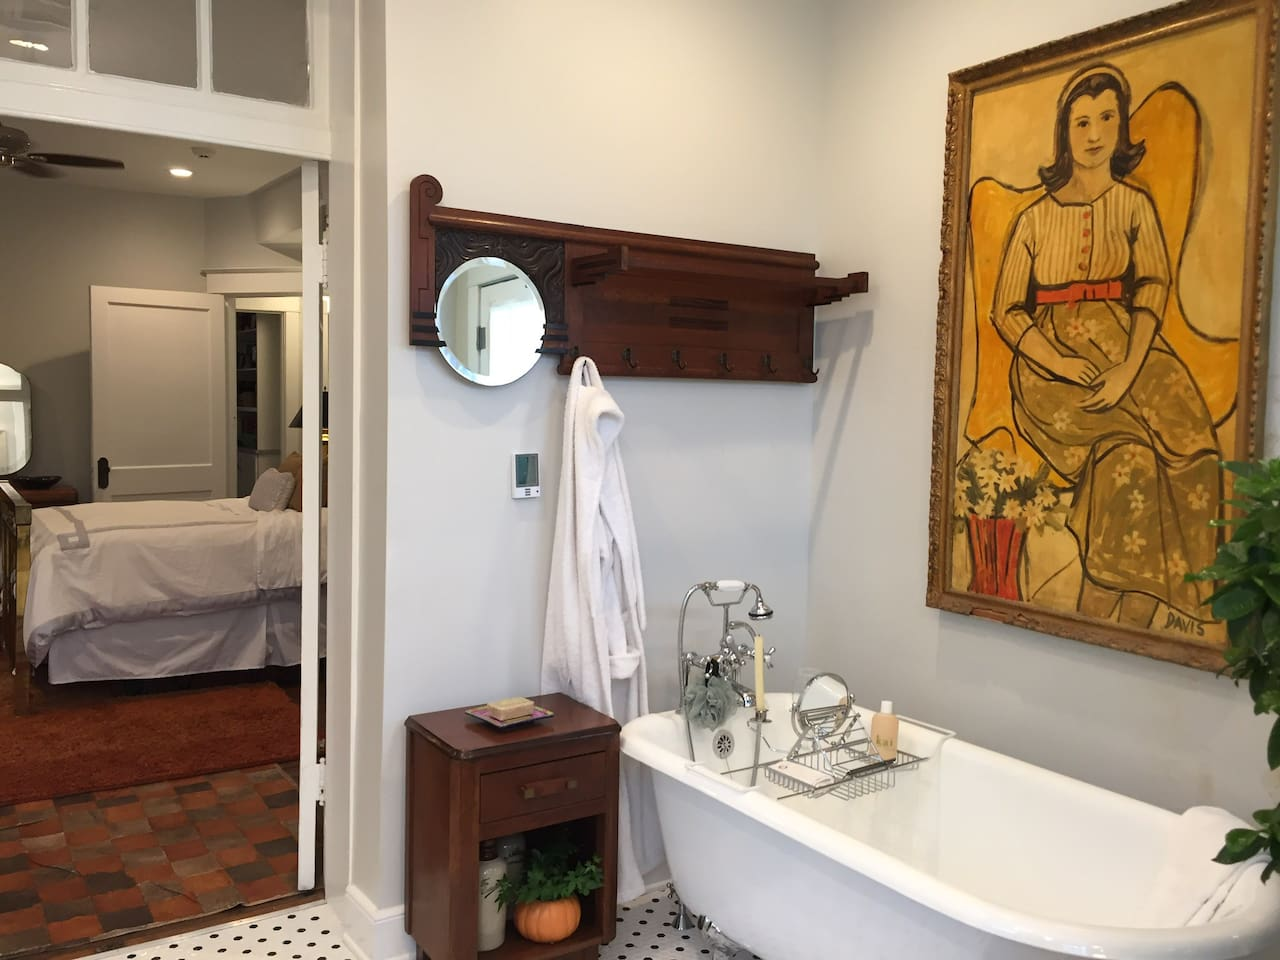 Private in-room bathroom with clawfoot tub